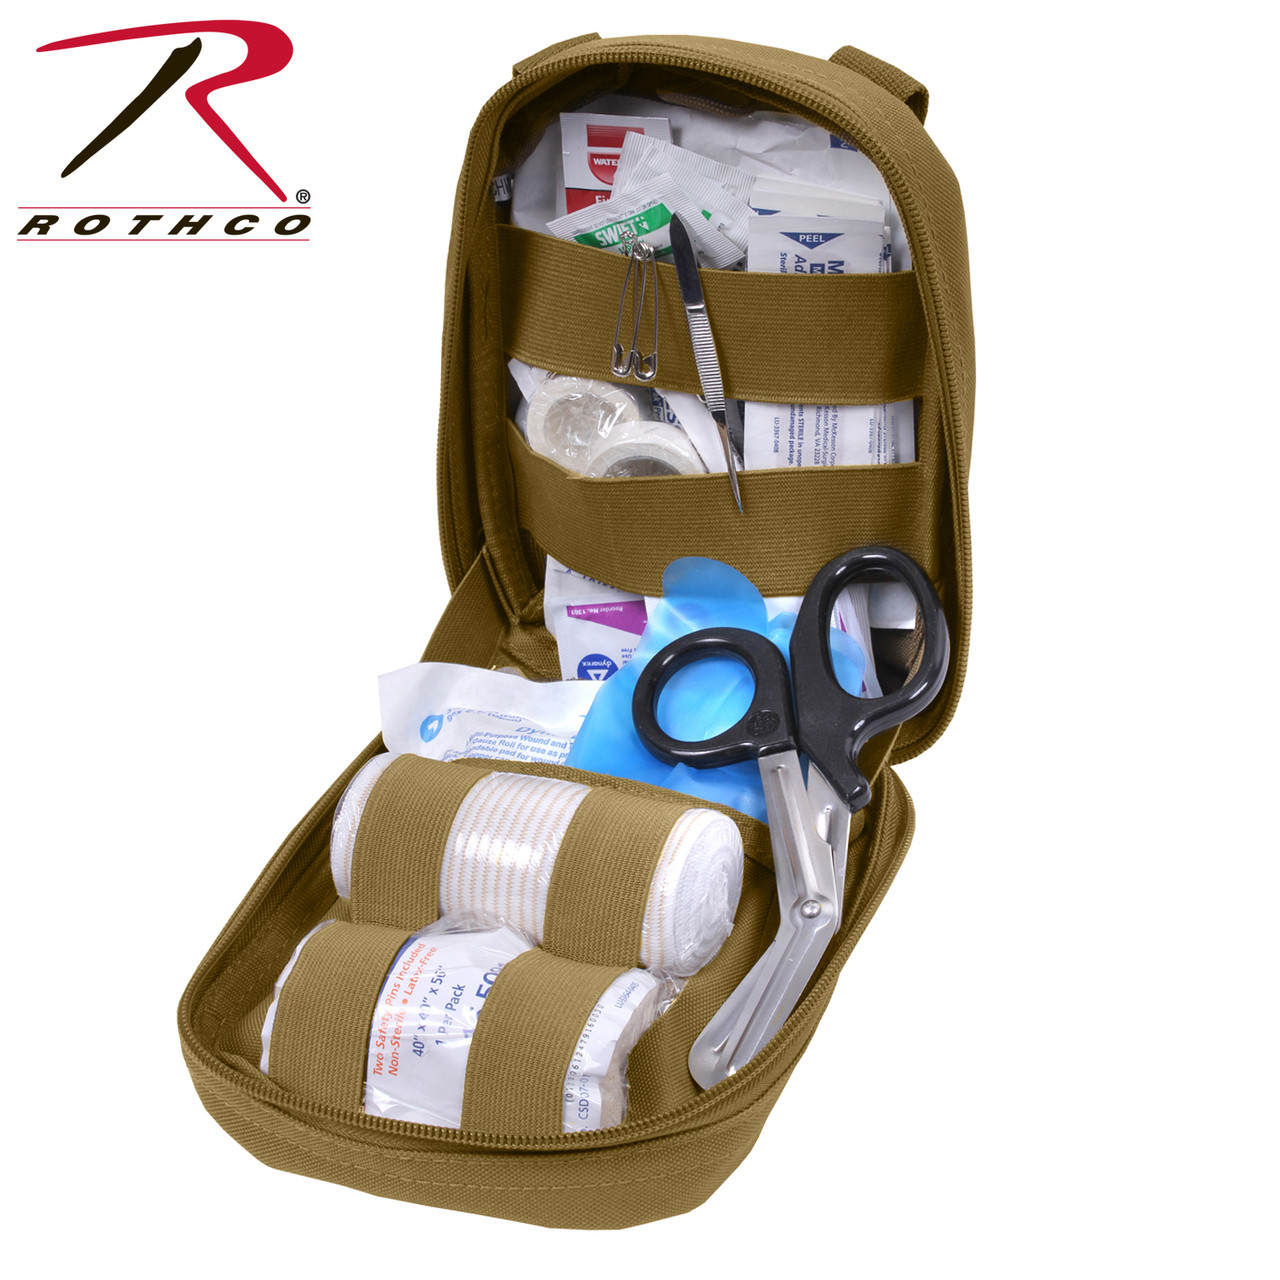 Shop Coyote Molle Tactical First Aid Kit - Fatigues Army Navy